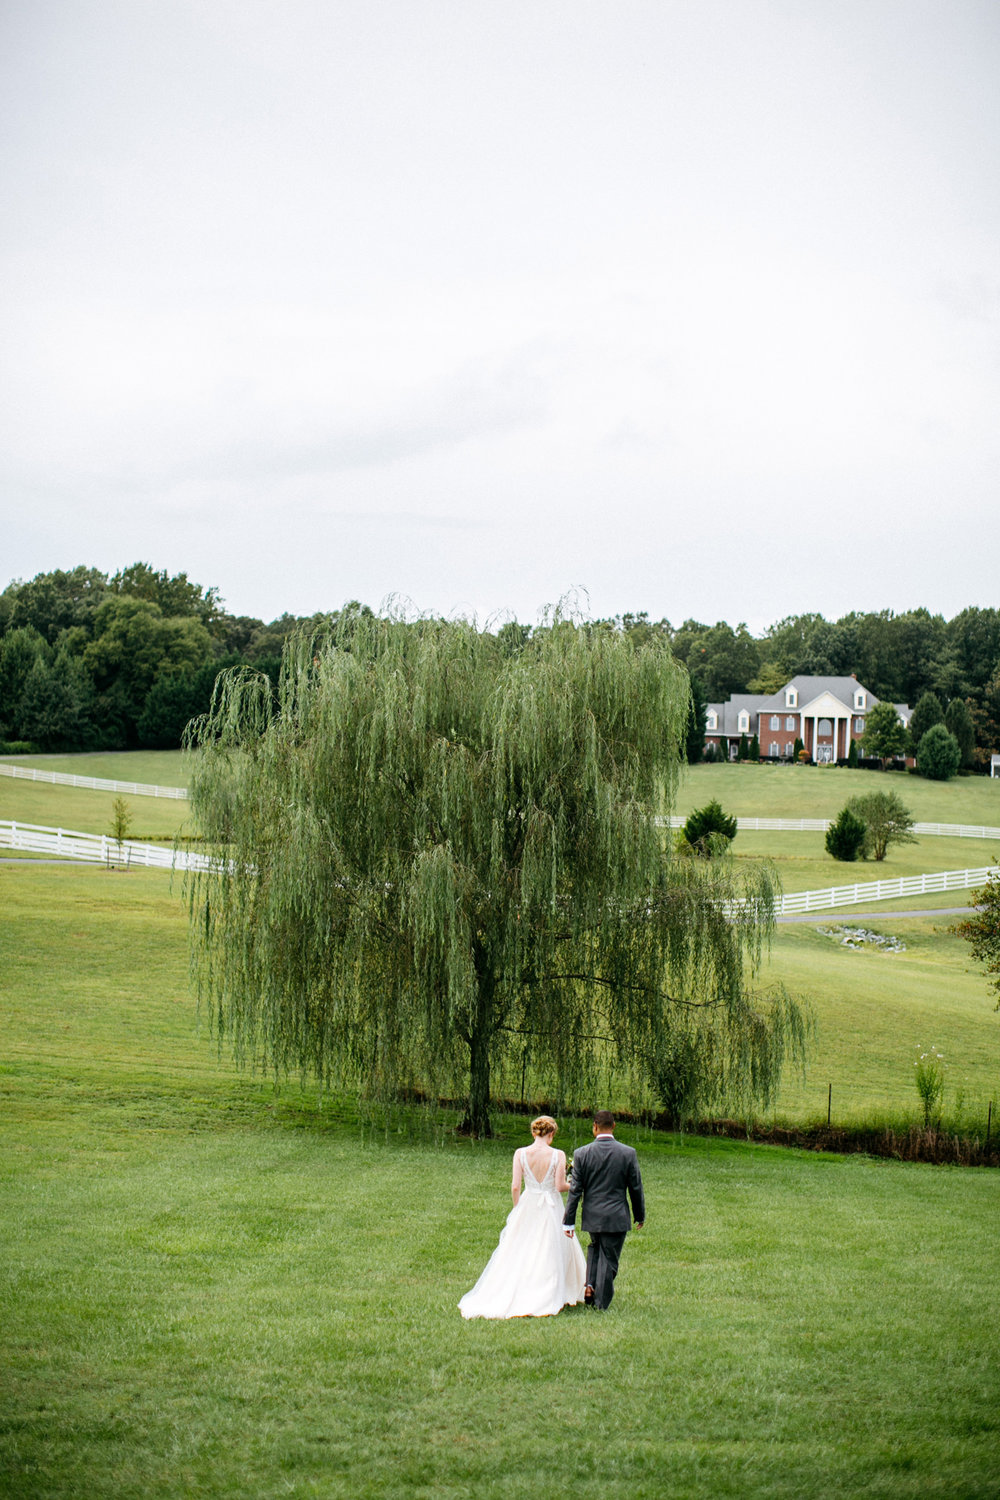 248-northern-virginia-wedding-photography.jpg